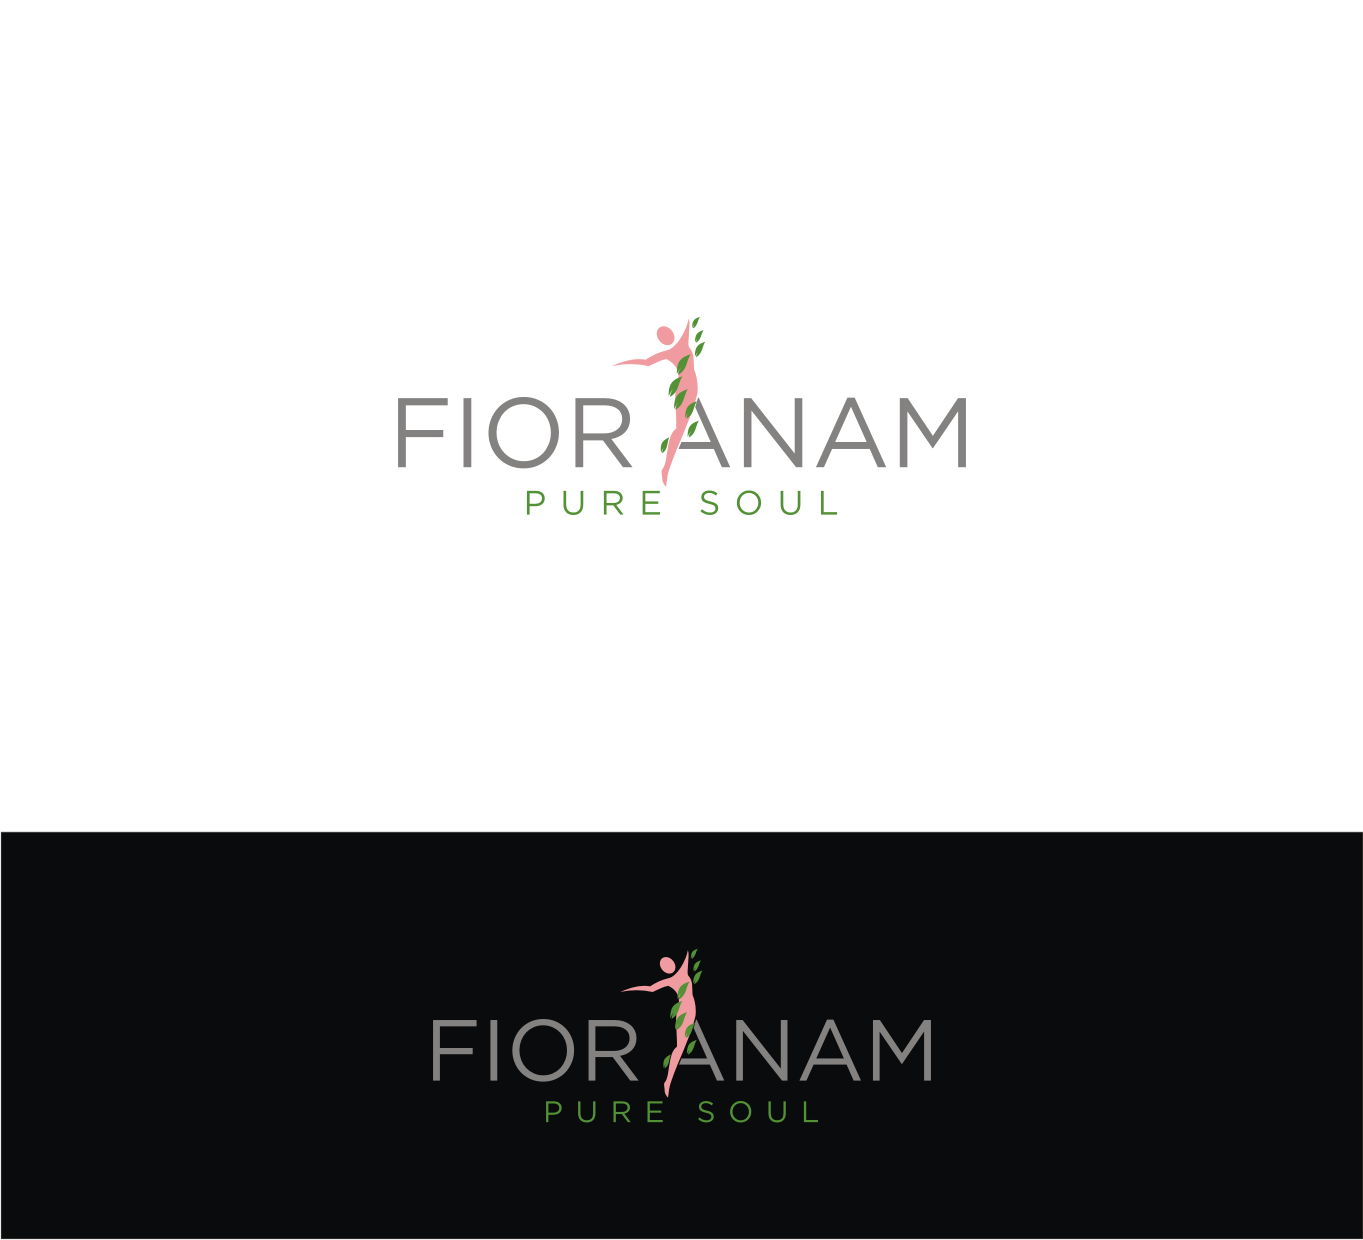 Logo Design by Sigitumarali Sigit - Entry No. 297 in the Logo Design Contest Creative Logo Design for Fior Anam.